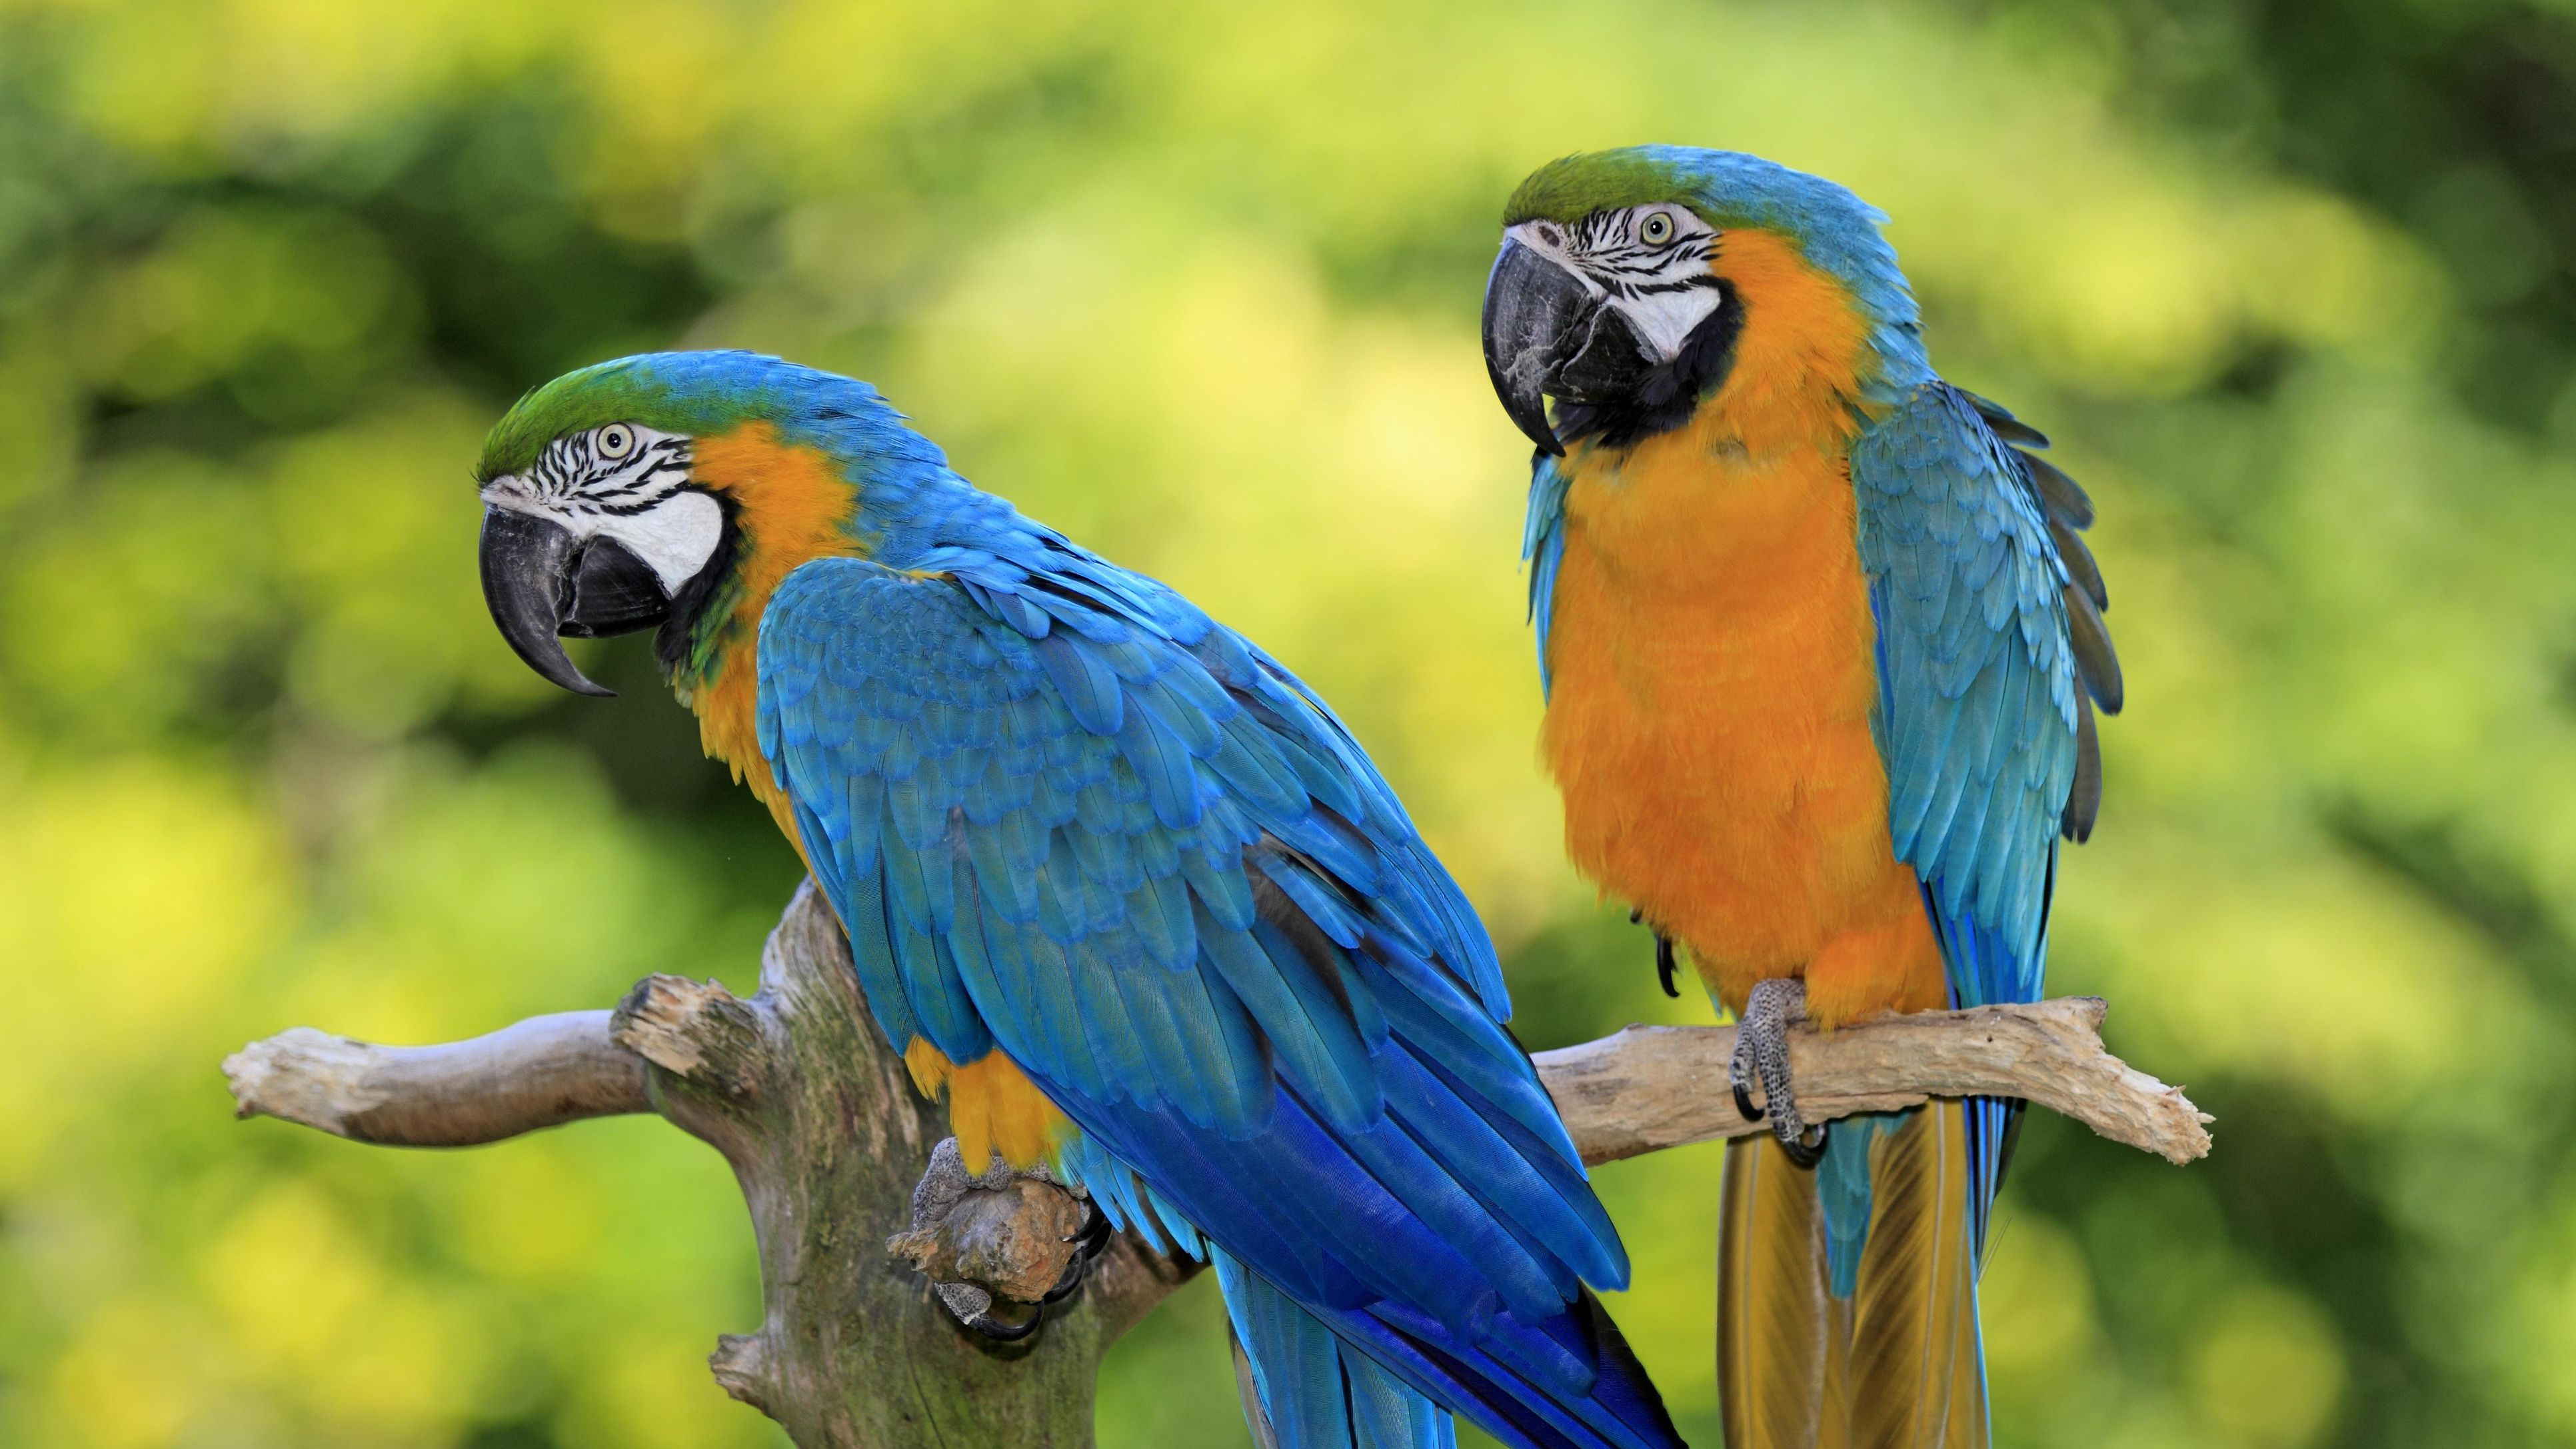 8 Top Large Parrots to Keep as Pets